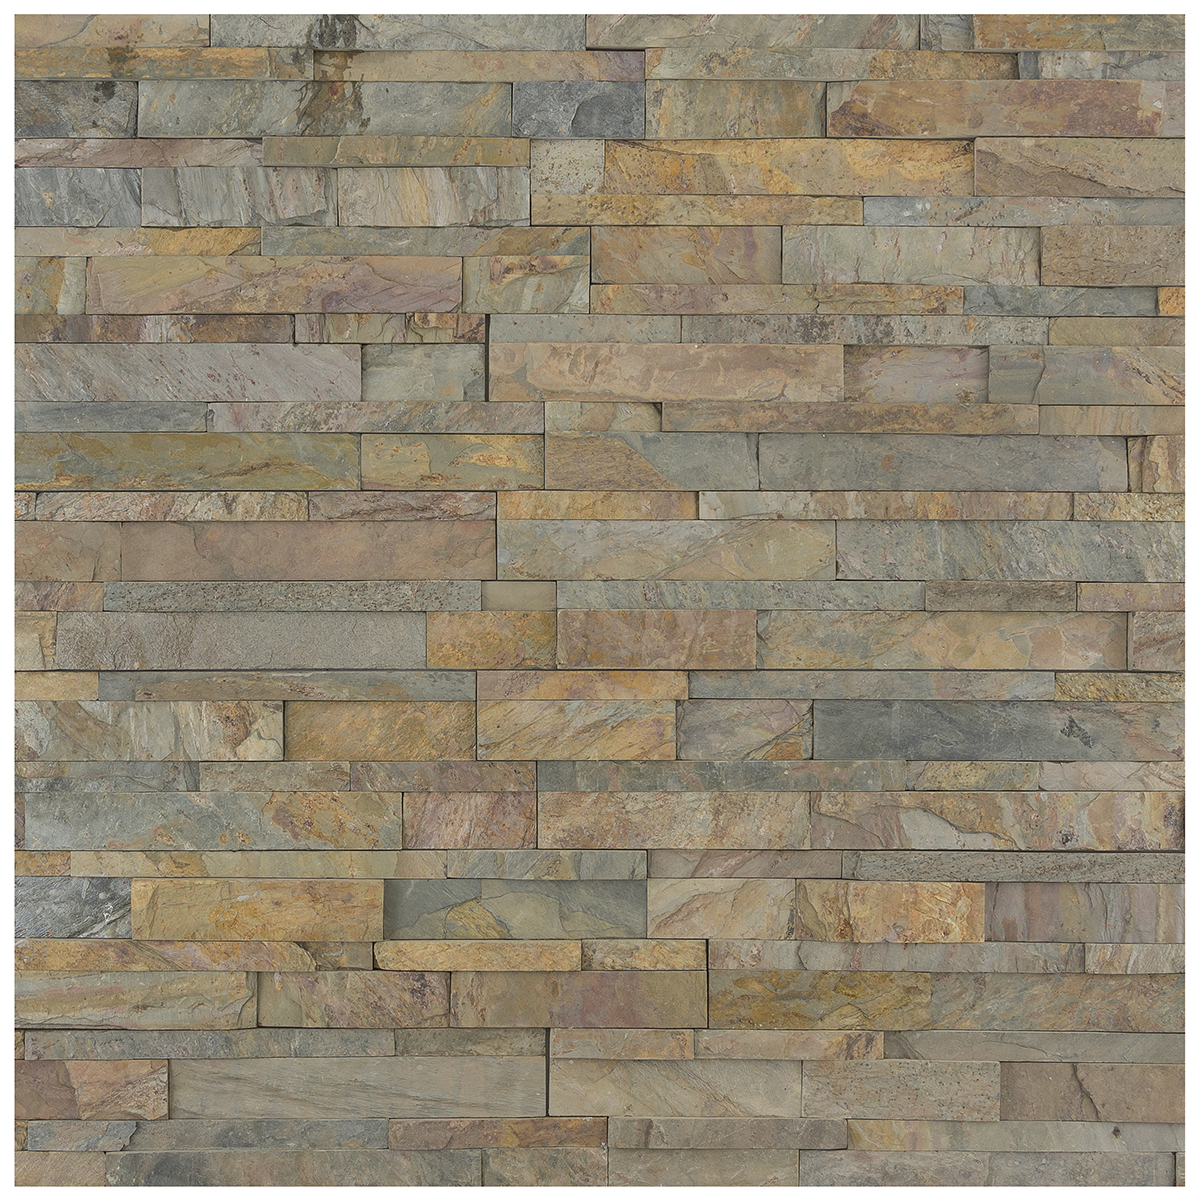 earthy tone stack panel slate cladding with grey and copper tones